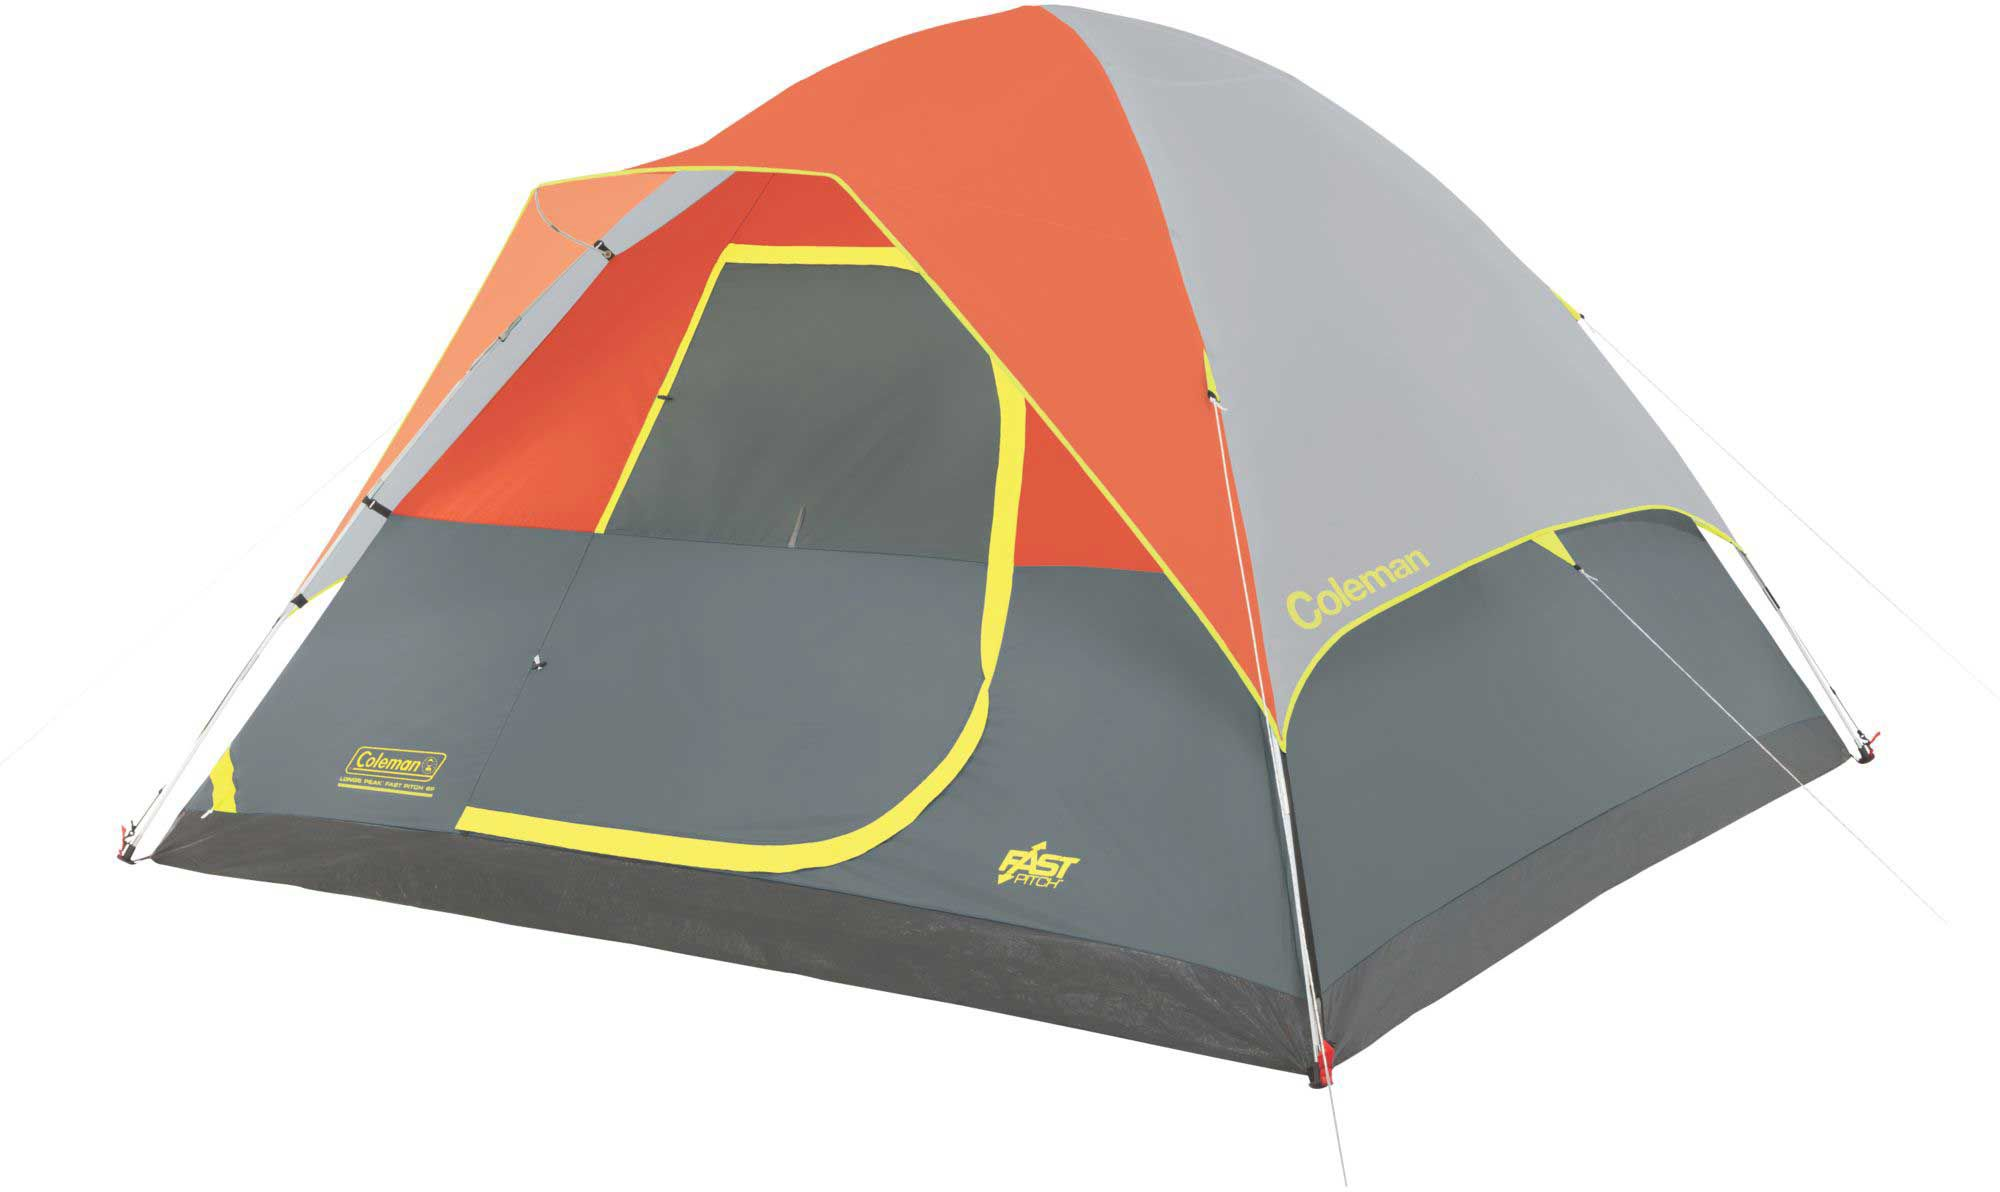 Product Image · Coleman River Gorge Fast Pitch 4 Person Tent  sc 1 st  DICKu0027S Sporting Goods & Tents for Sale | Best Price Guarantee at DICKu0027S